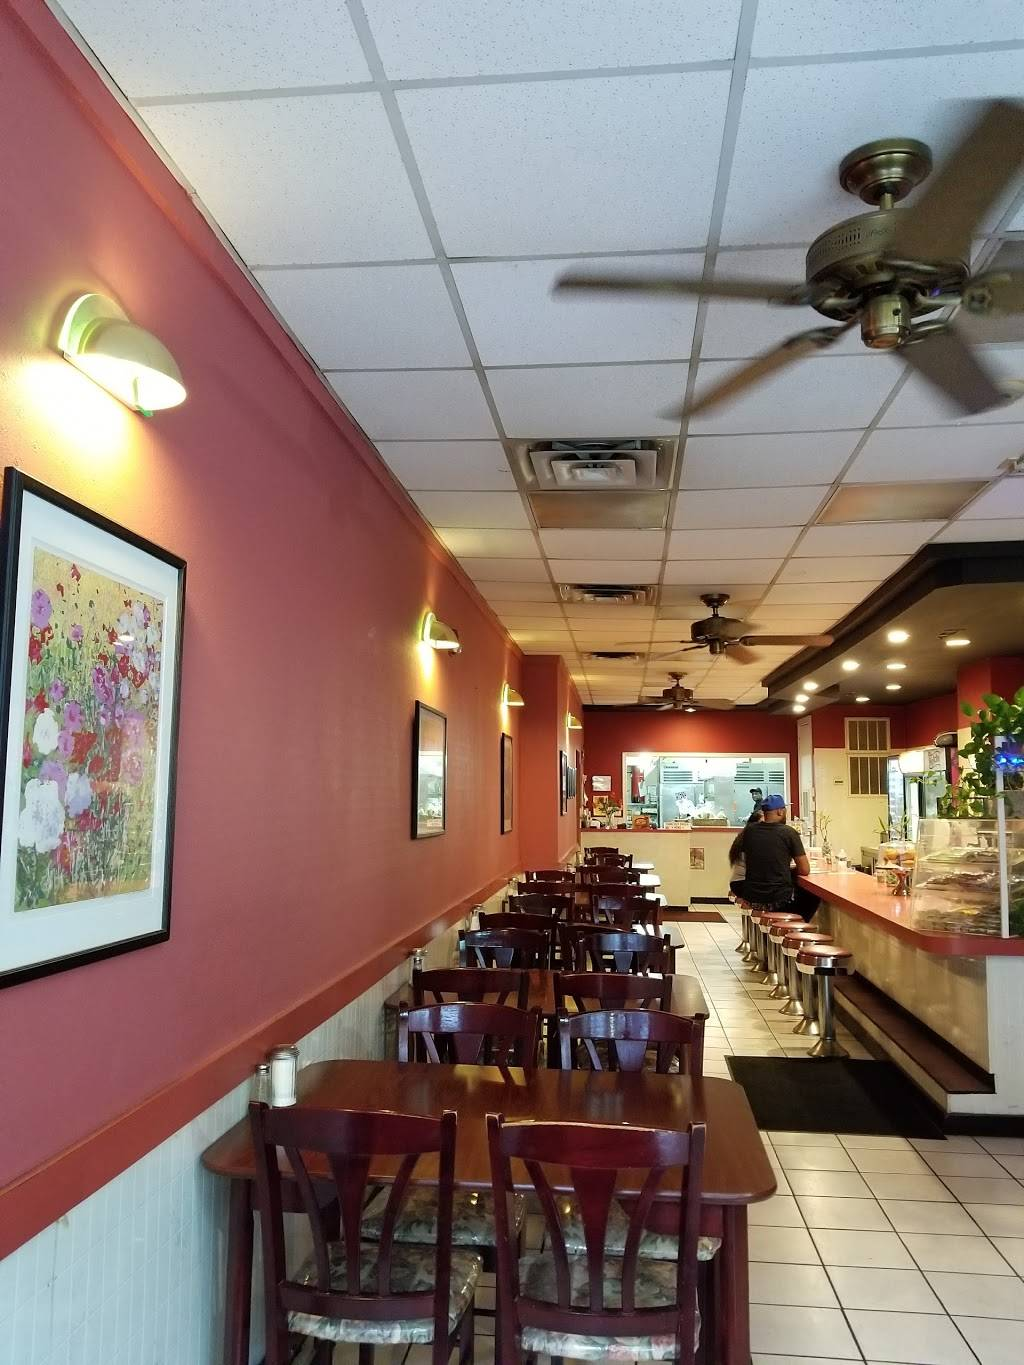 Cambridge Restaurant | restaurant | 505 Avenue of the States, Chester, PA 19013, USA | 6108748313 OR +1 610-874-8313